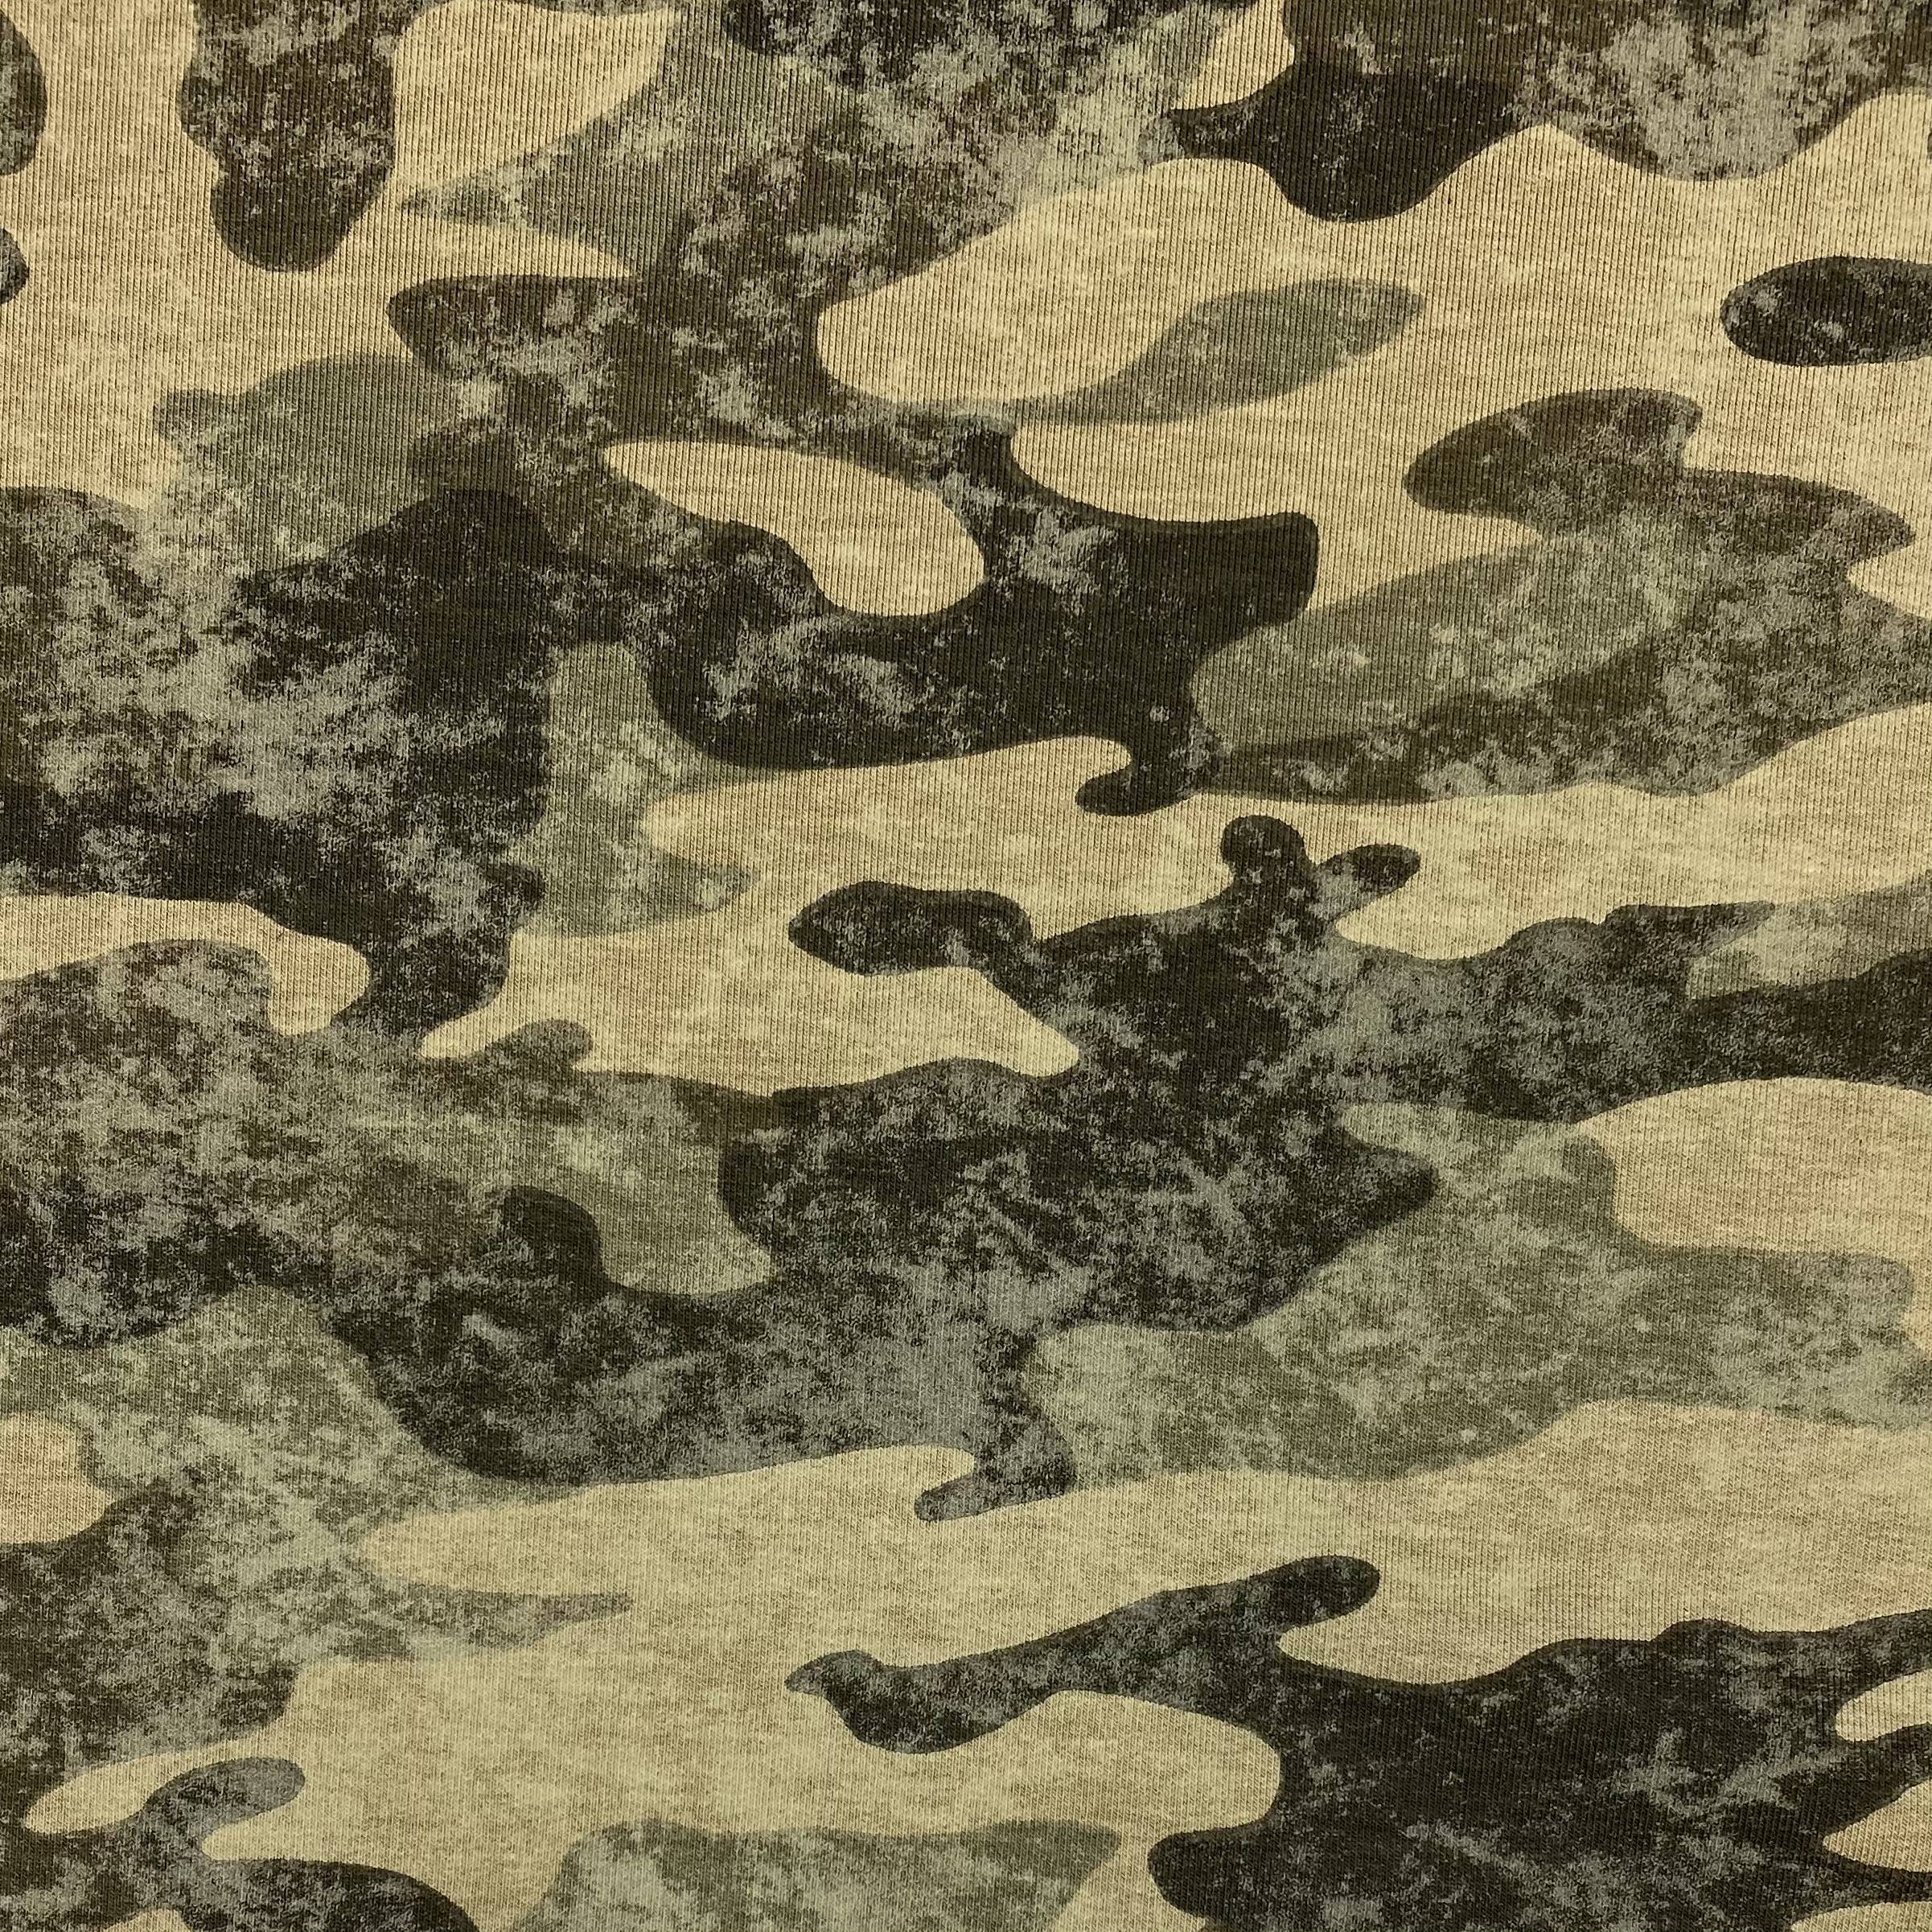 French Terry, Camouflage, dunkelgrün. Art. 10494/026.